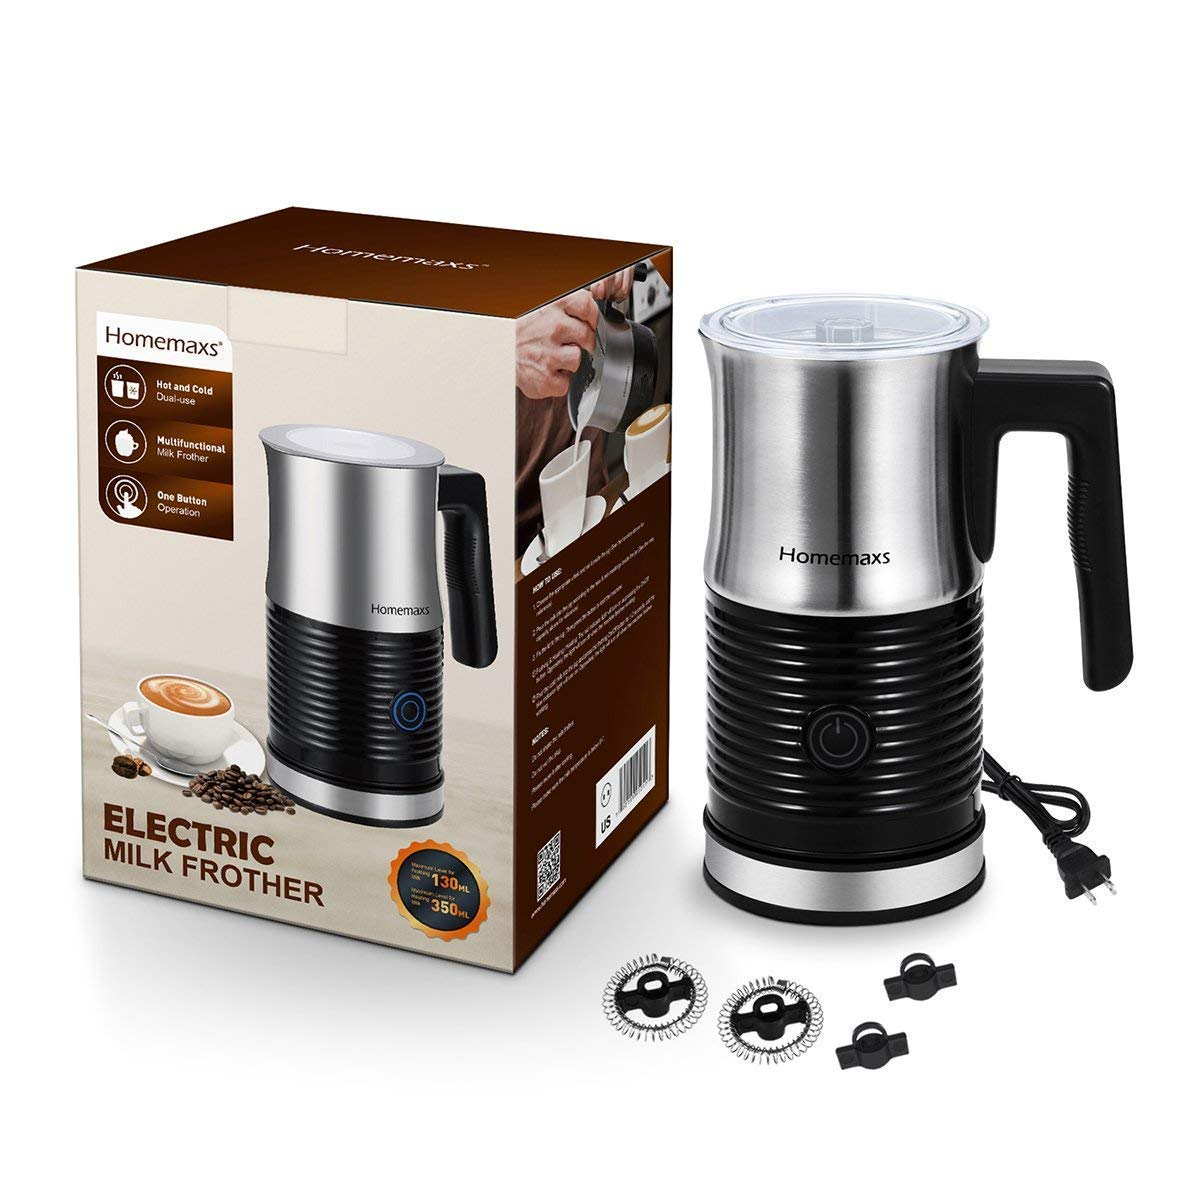 Milk Frother, Homemaxs Electric Milk Frother & Warmer with Hot or Cold Function, Anti-hot Base & Non-Stick Interior Perfect Foam for Coffee, Hot Chocolate, Cappuccino(Black) by Homemaxs (Image #7)